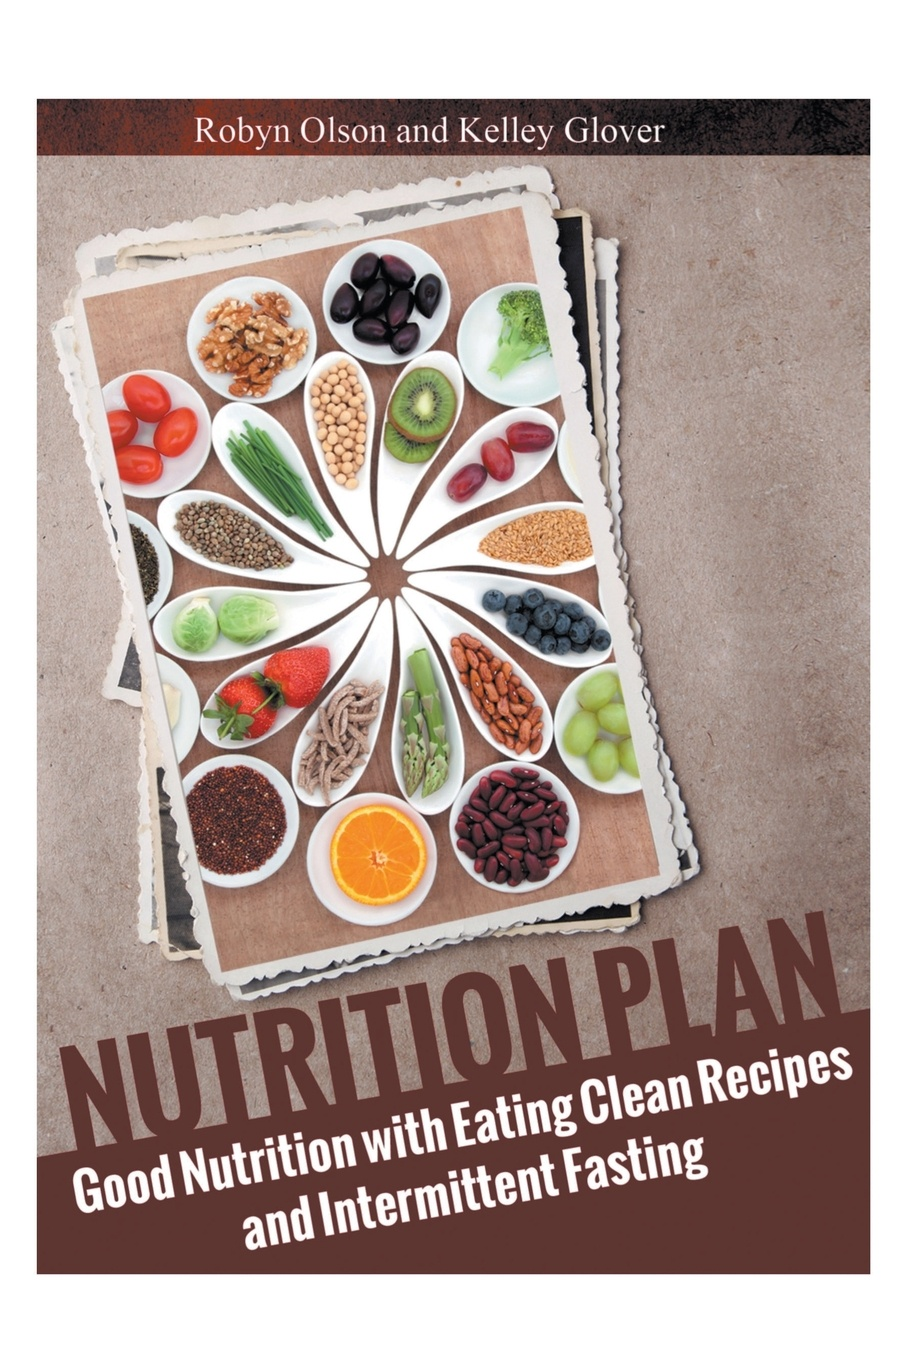 Robyn Olson Nutrition Plan. Good Nutrition with Eating Clean Recipes and Intermittent Fasting good karma diet